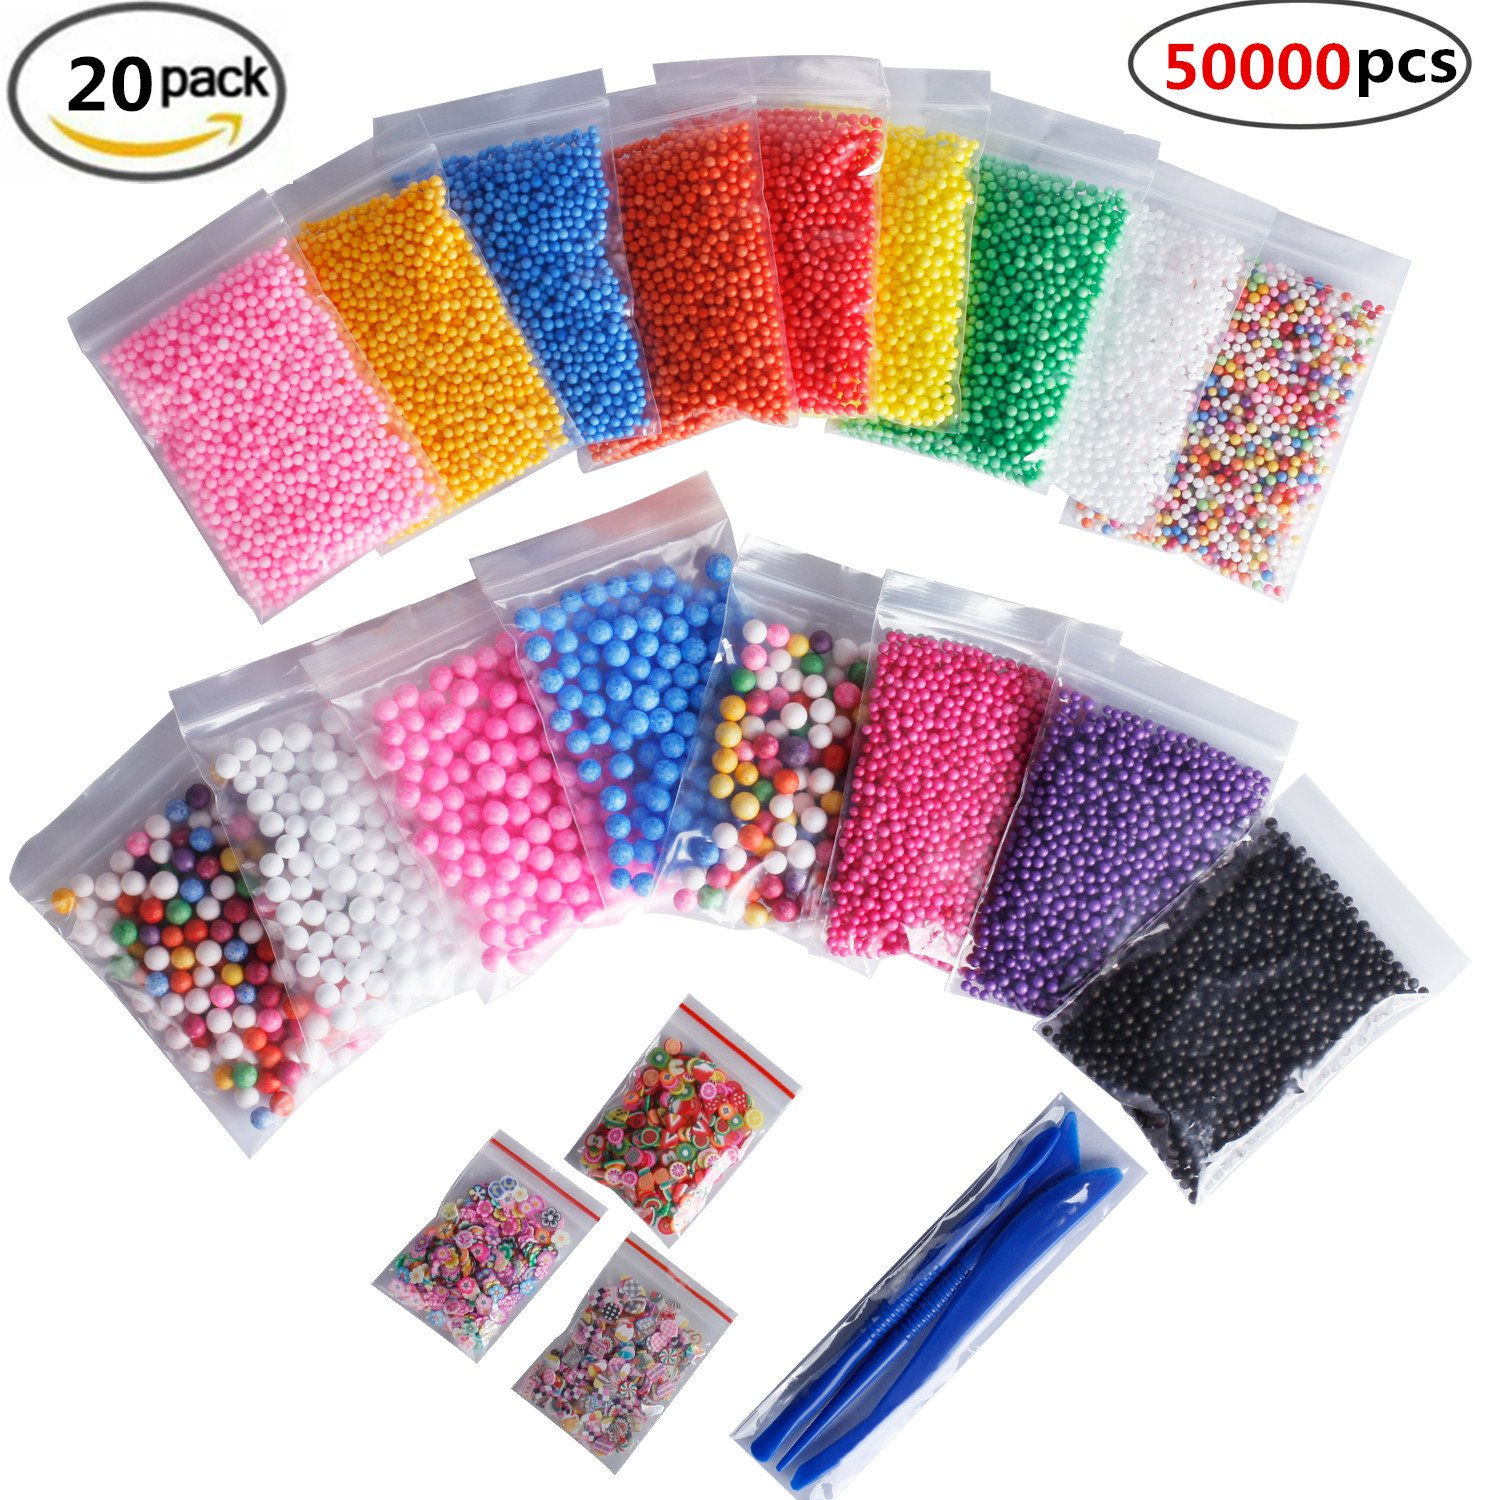 "SHEEFLY 20 pack 50000 Pieces Colorful Styrofoam Foam Balls for Slime, Craft Foam Beads 0.08-0.35""with 3 Slime Tools for Slime Making Art DIY Craft Wedding Party Decoration"